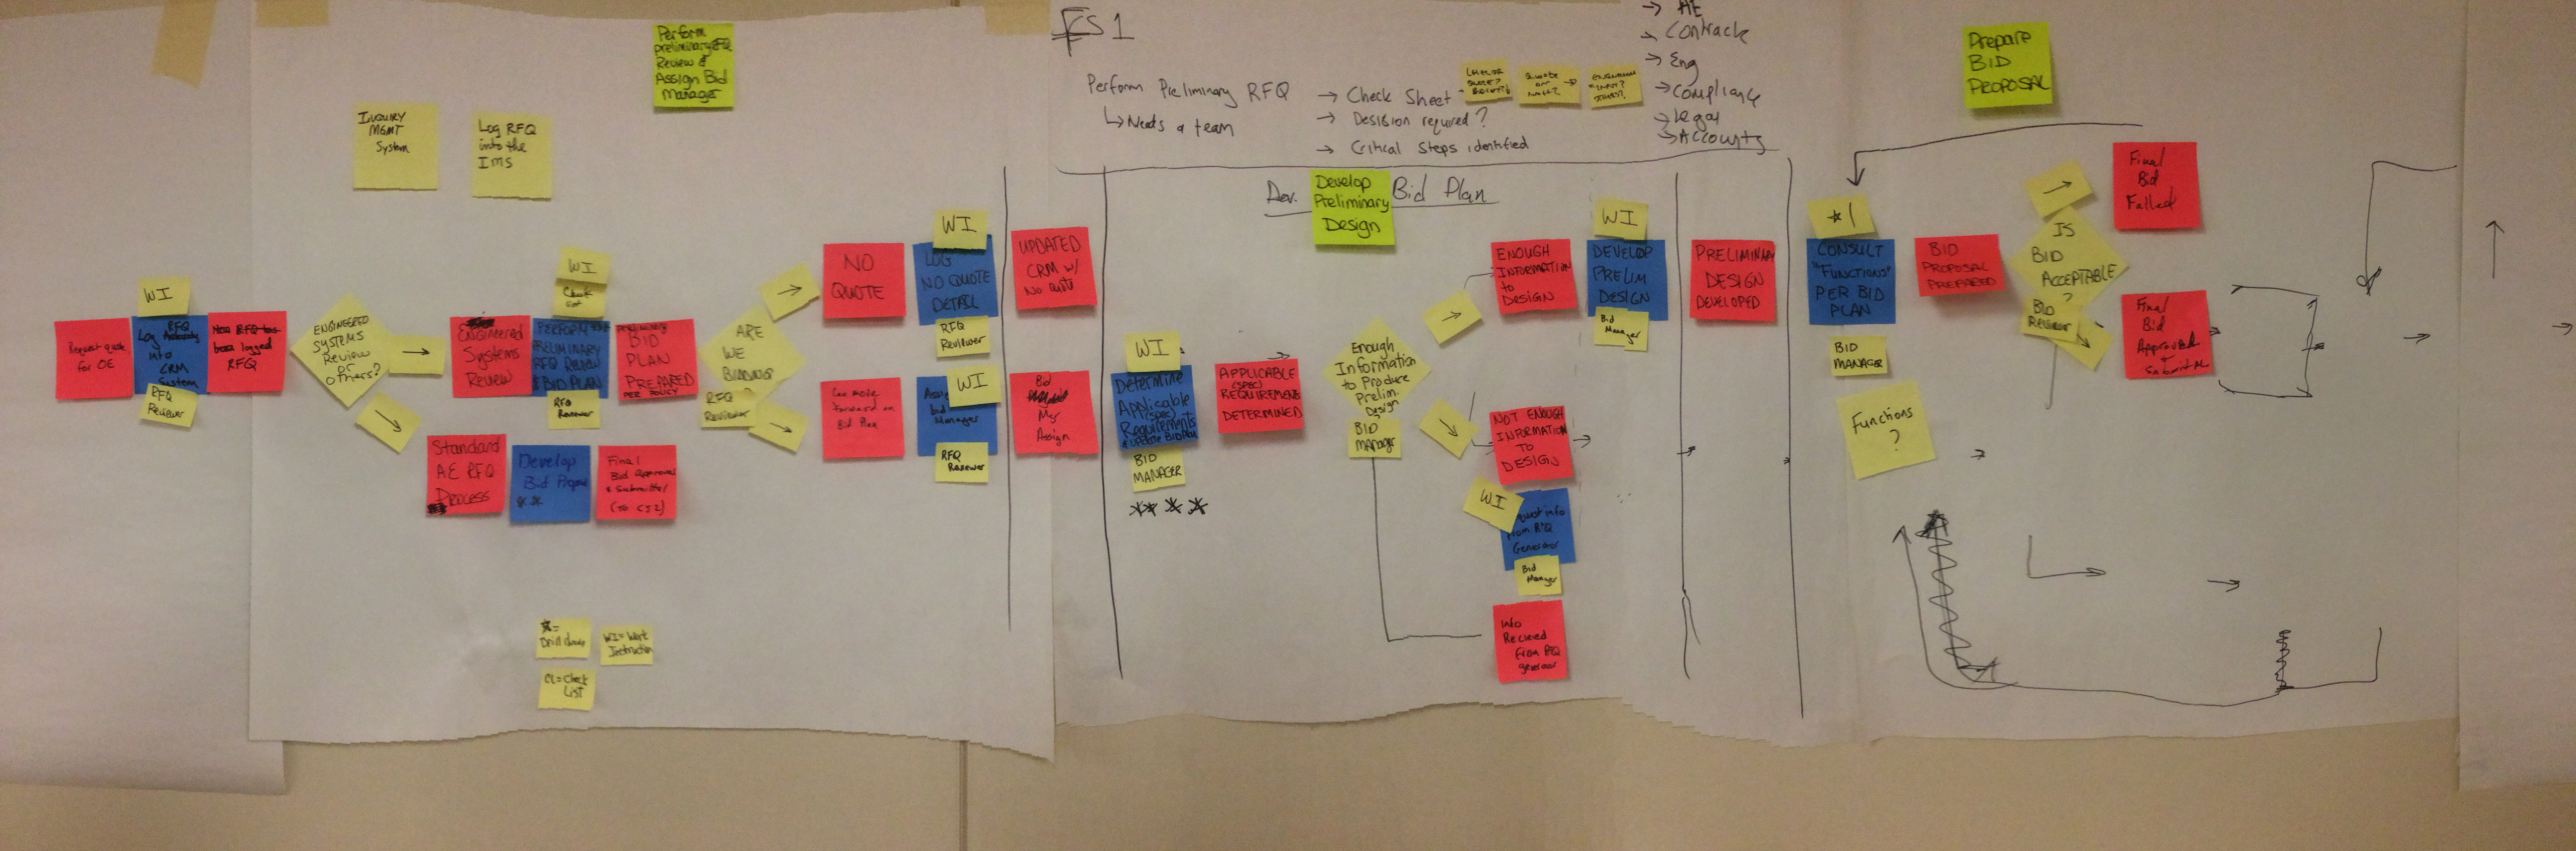 7 Process Mapping Skills You Need to Be Successful